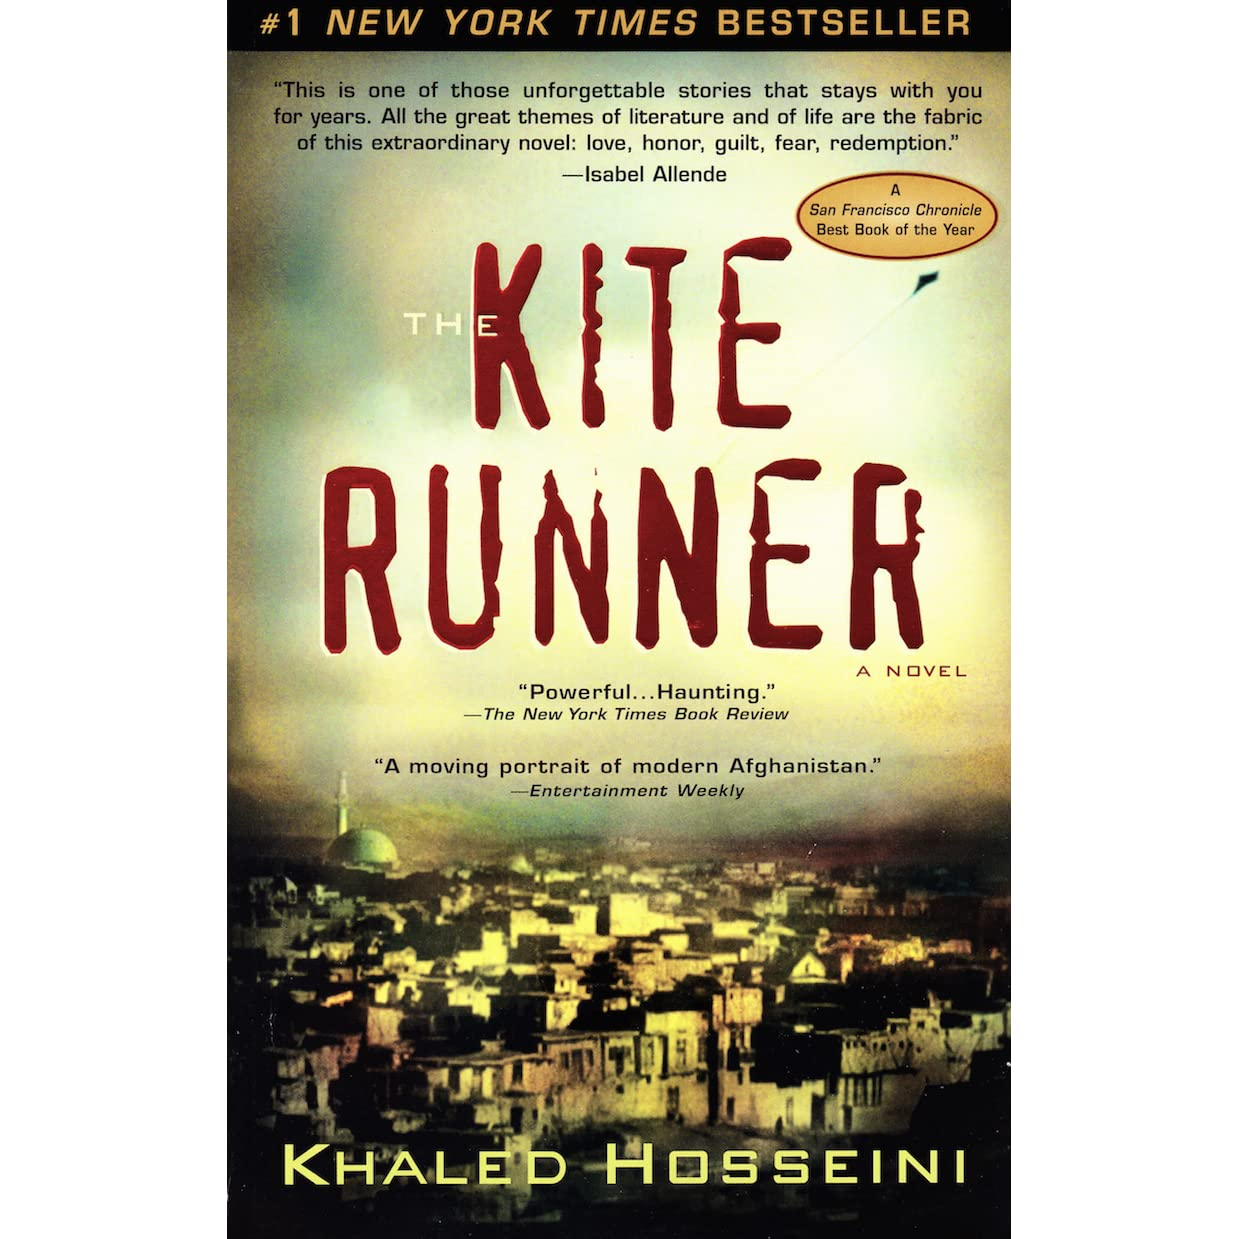 A book review of the kite runner by khaled hosseini